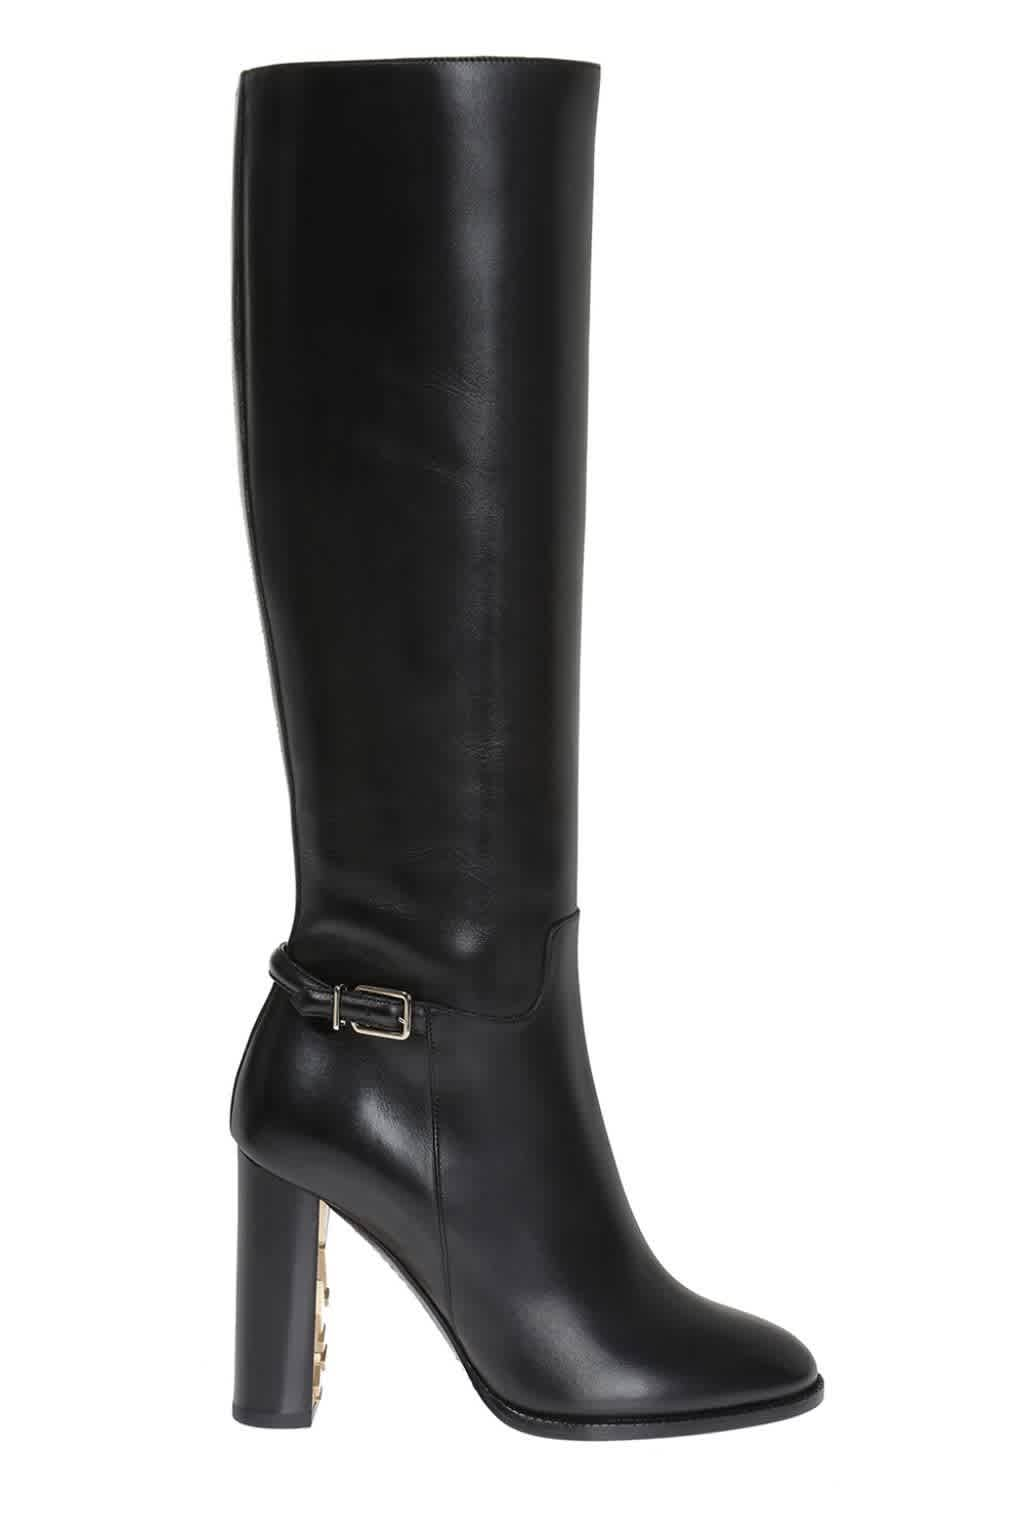 Burberry Ladies Marston Leather Knee-high Boots In Black,gold Tone